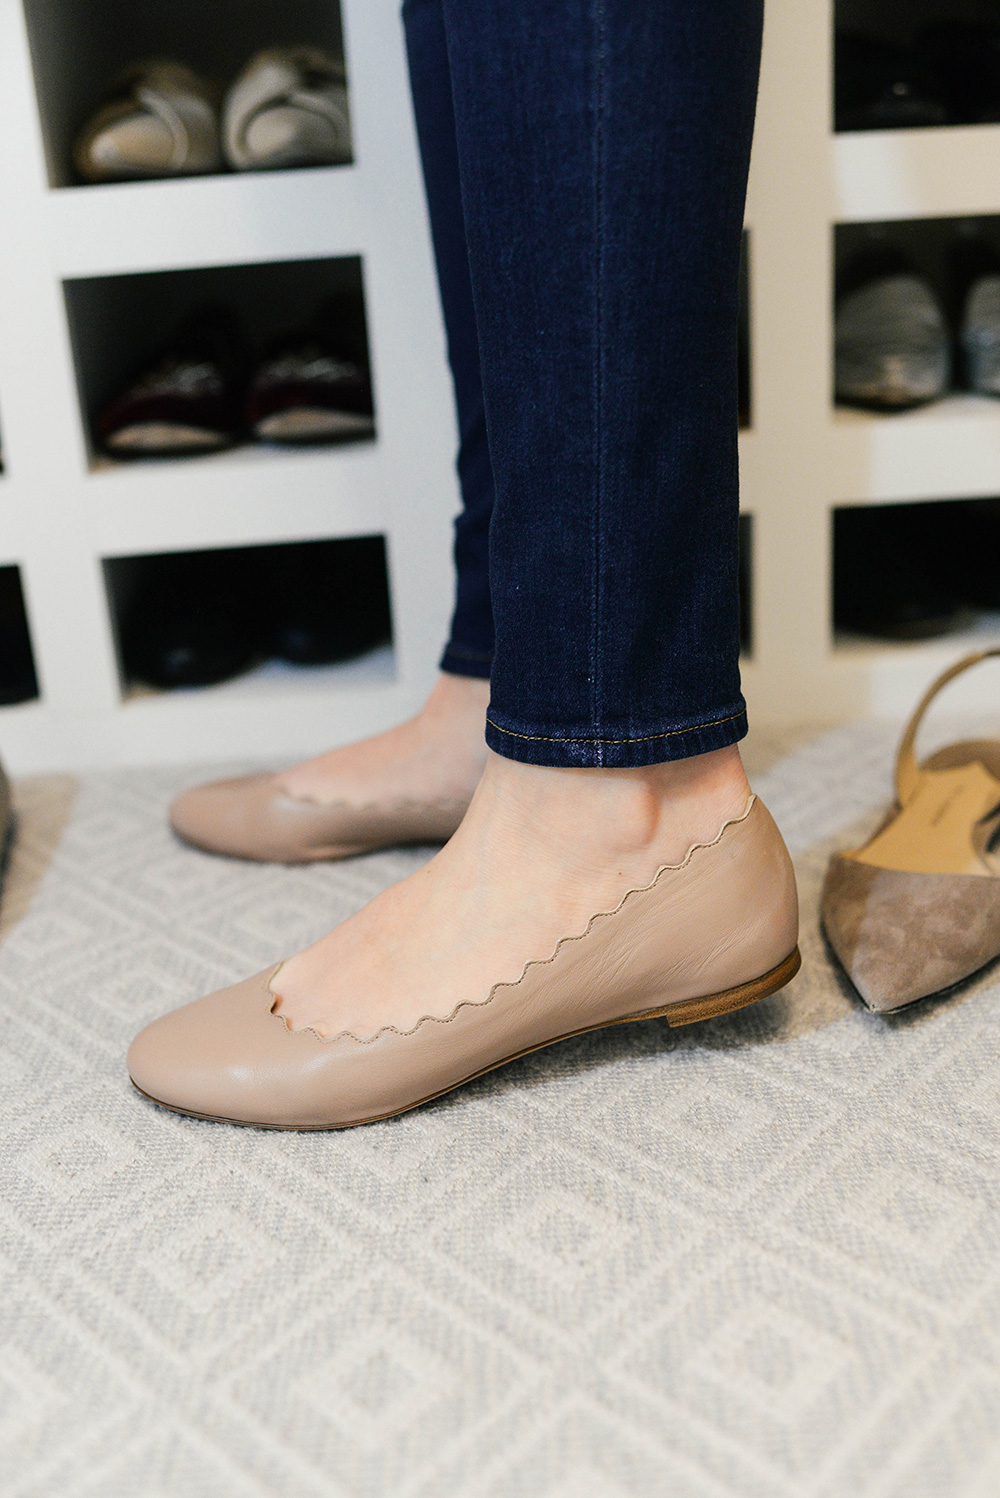 Chloe Leather Scalloped Ballet Flats | Style Scribe